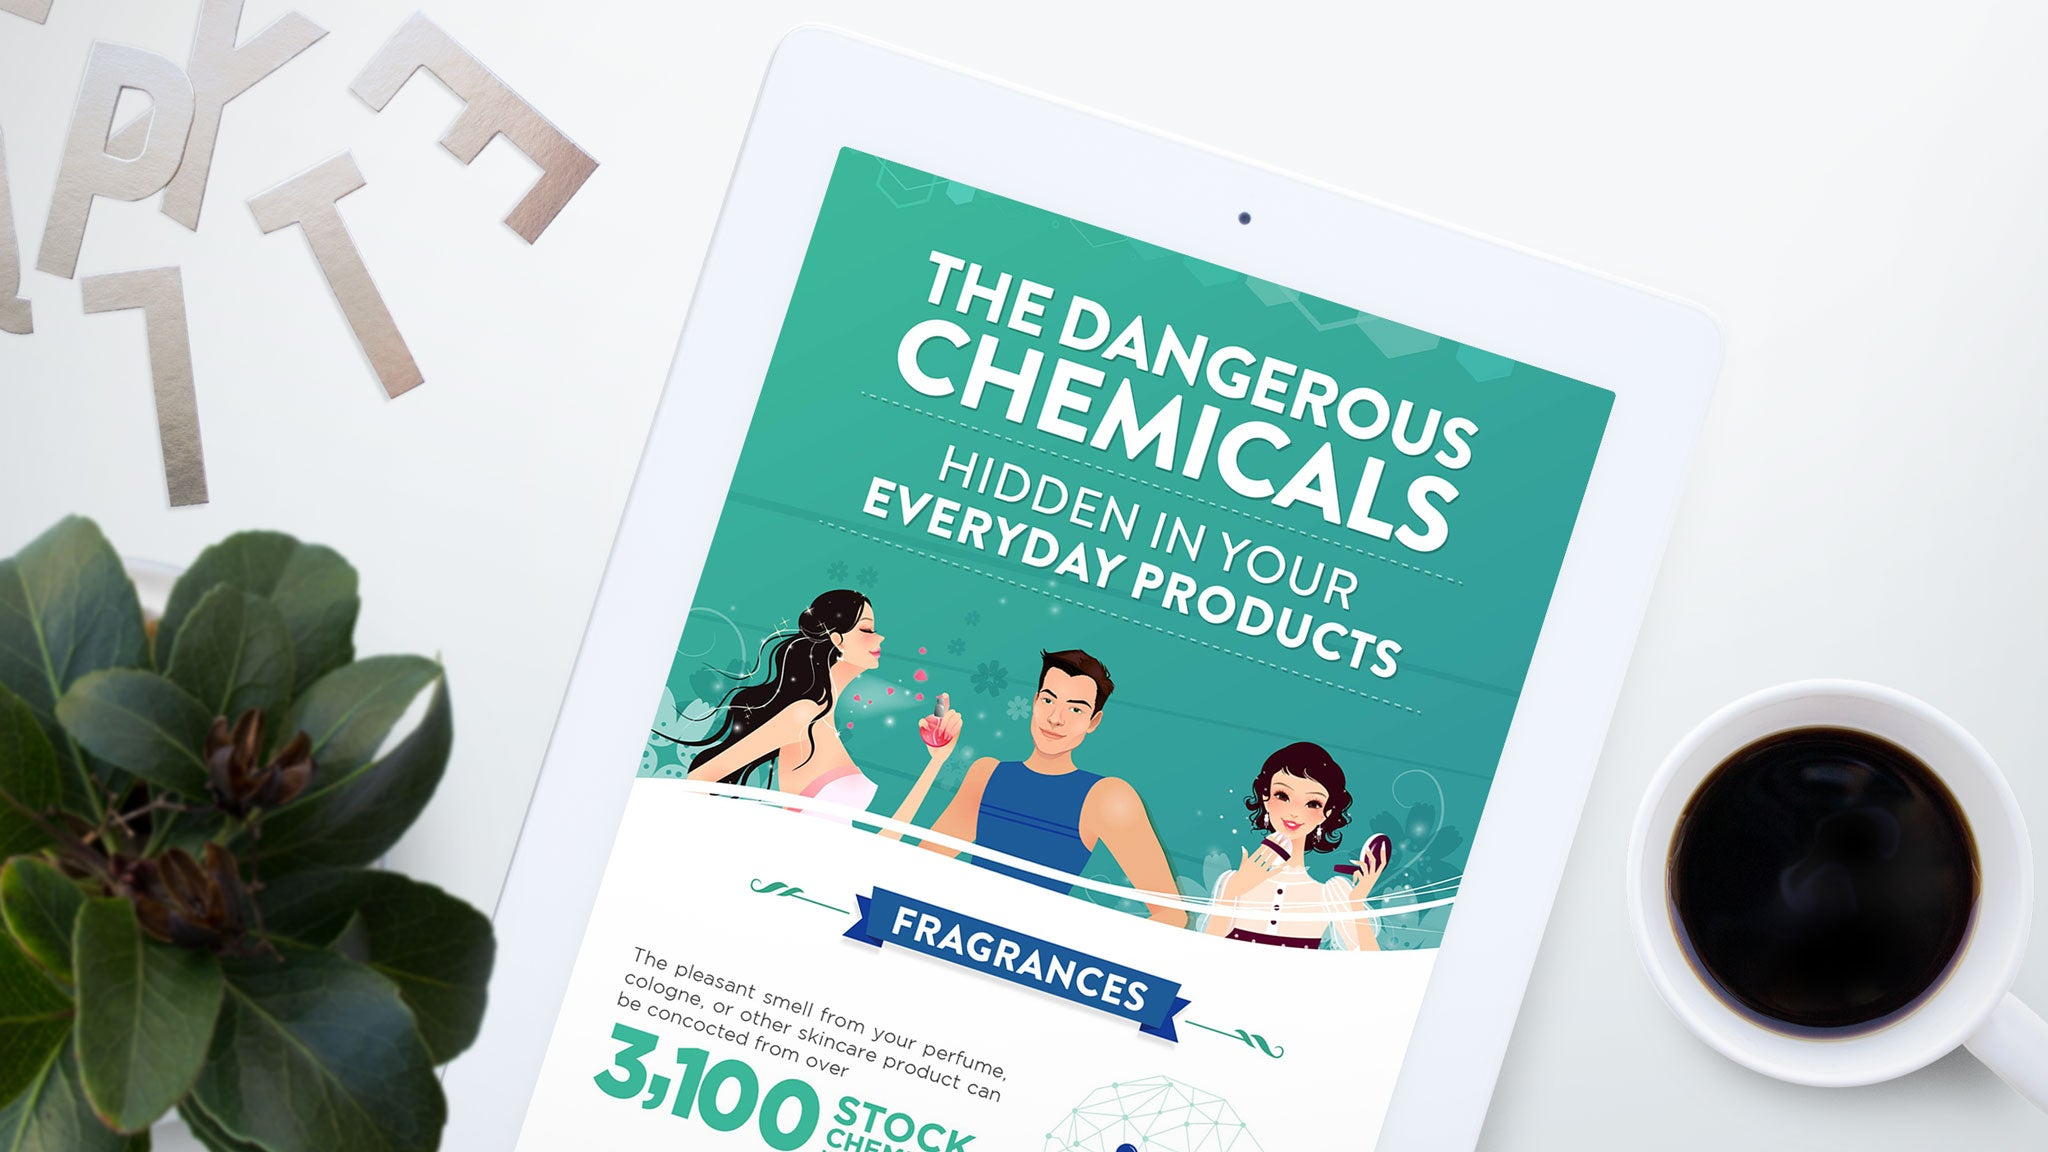 Toxic Chemicals Hidden in Everyday Products (Infographic)